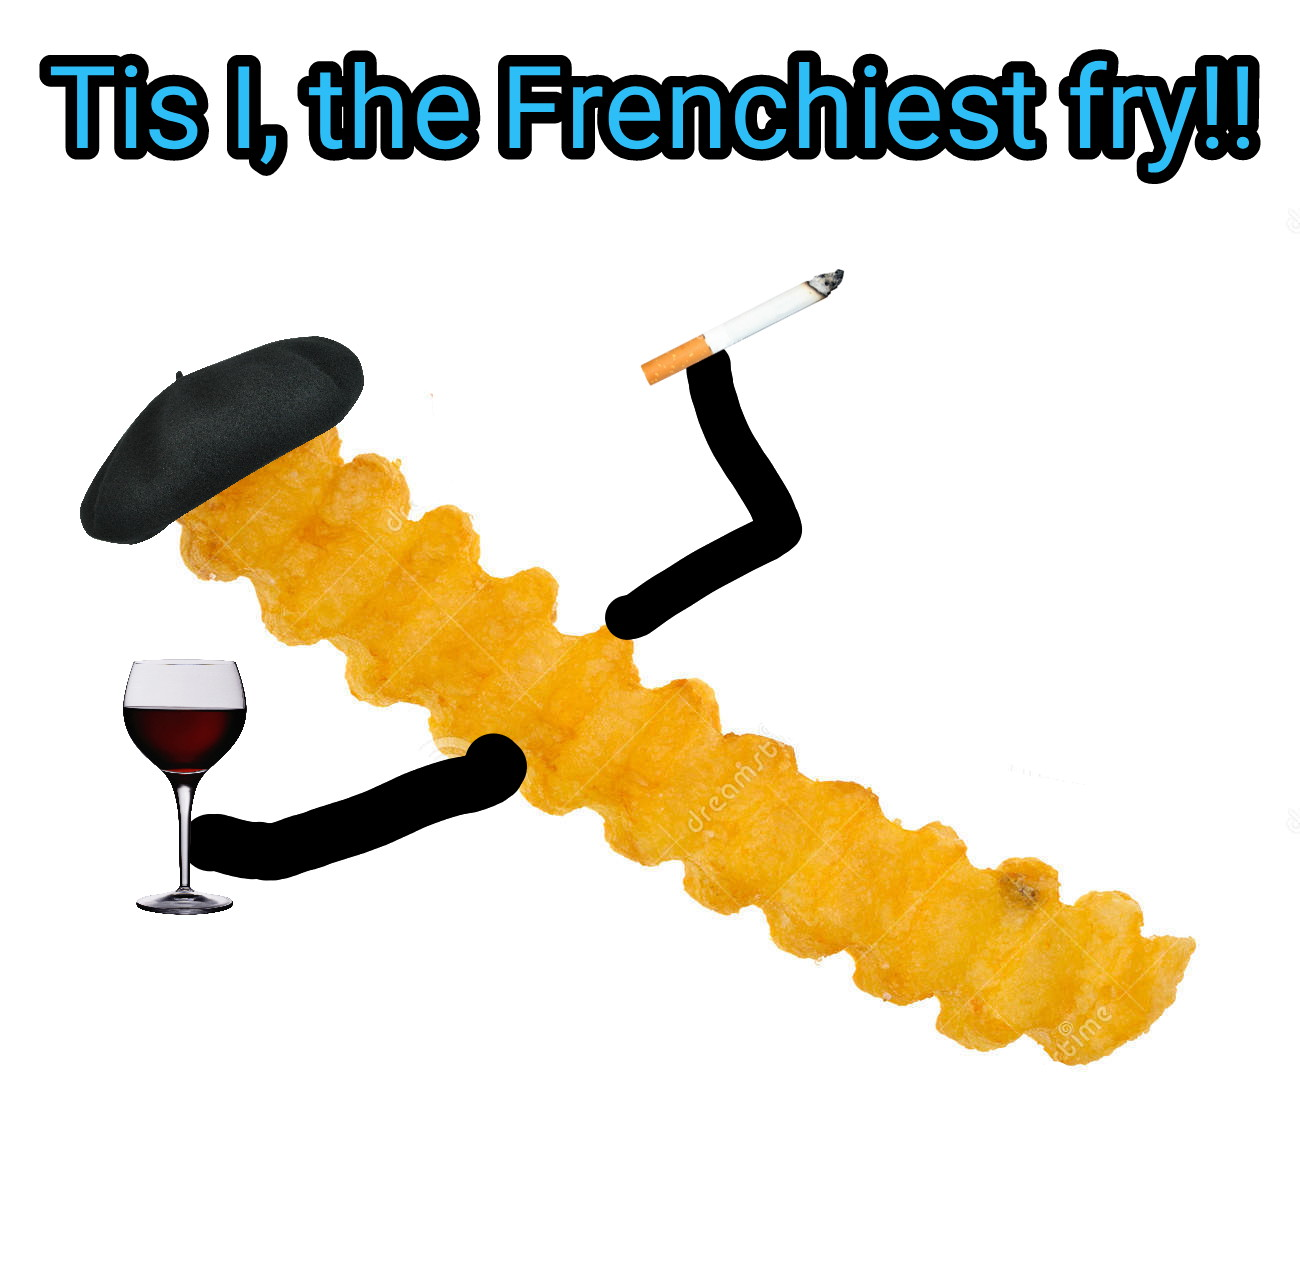 The Frenchiest fry..